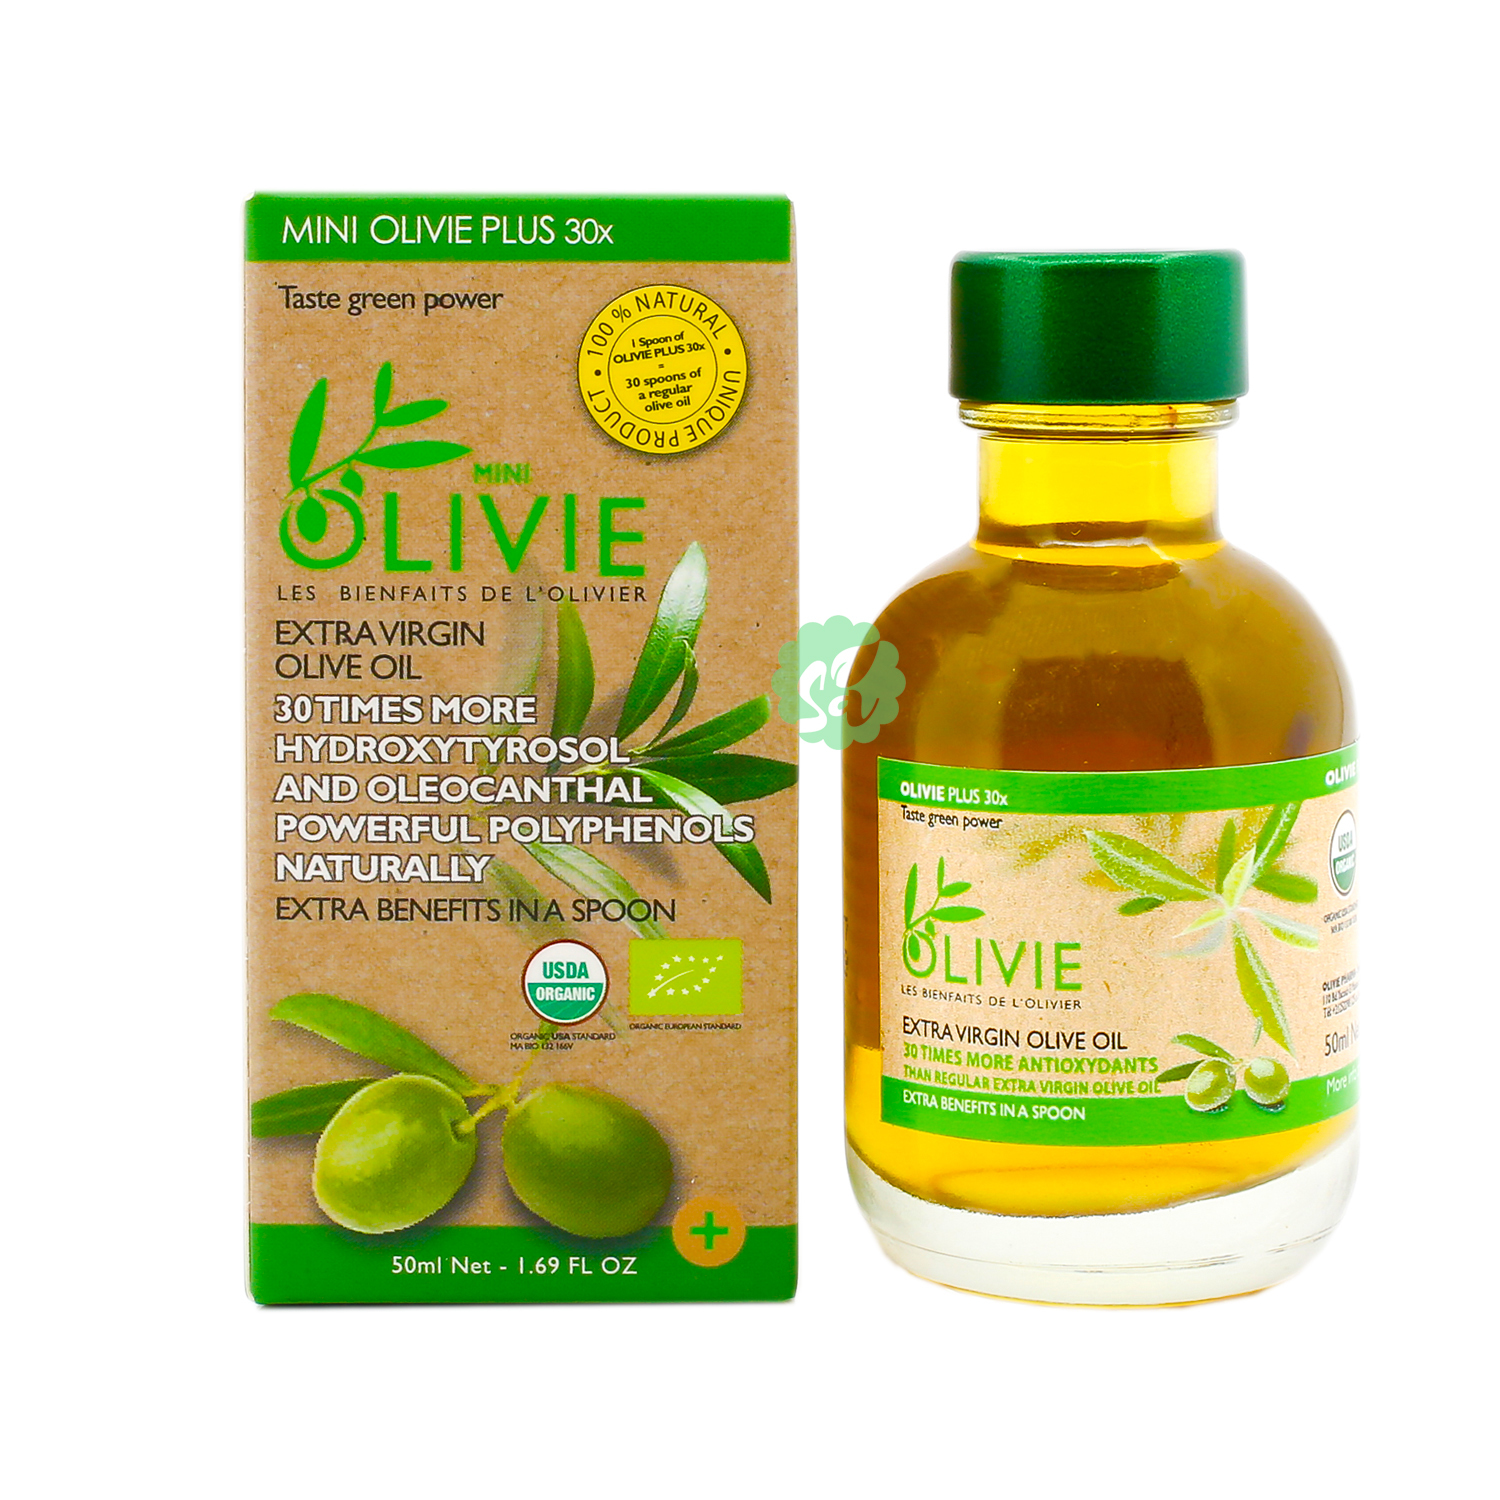 Extra Virgin Olive Oil - Mini Olivie Plus 30x - 50ml